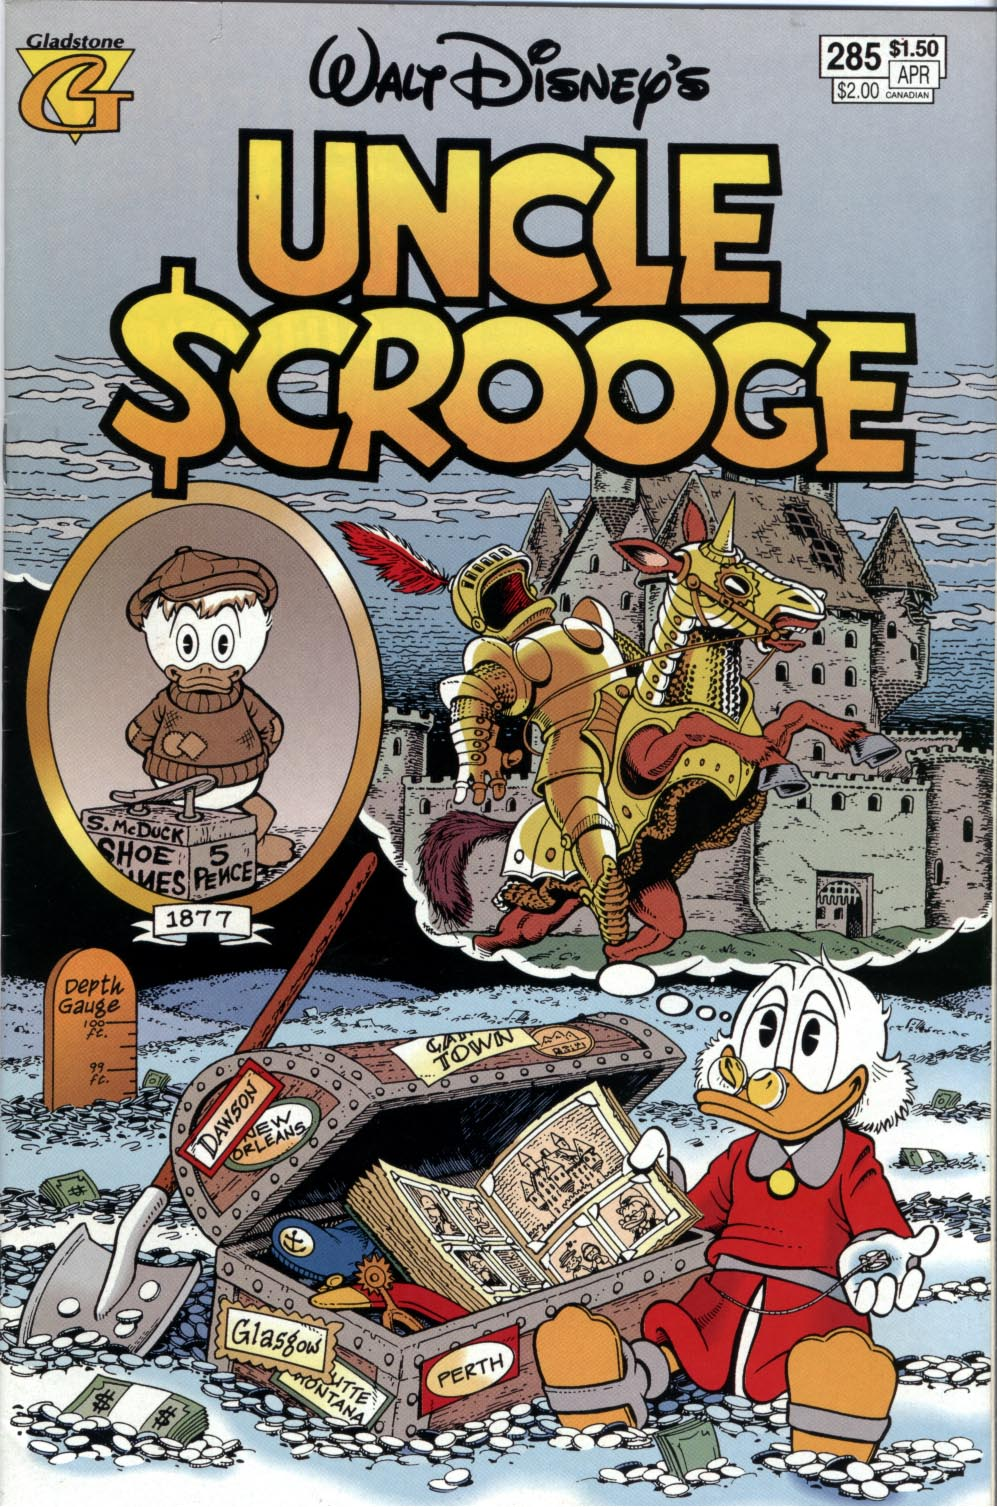 Read online Uncle Scrooge (1953) comic -  Issue #285 - 1